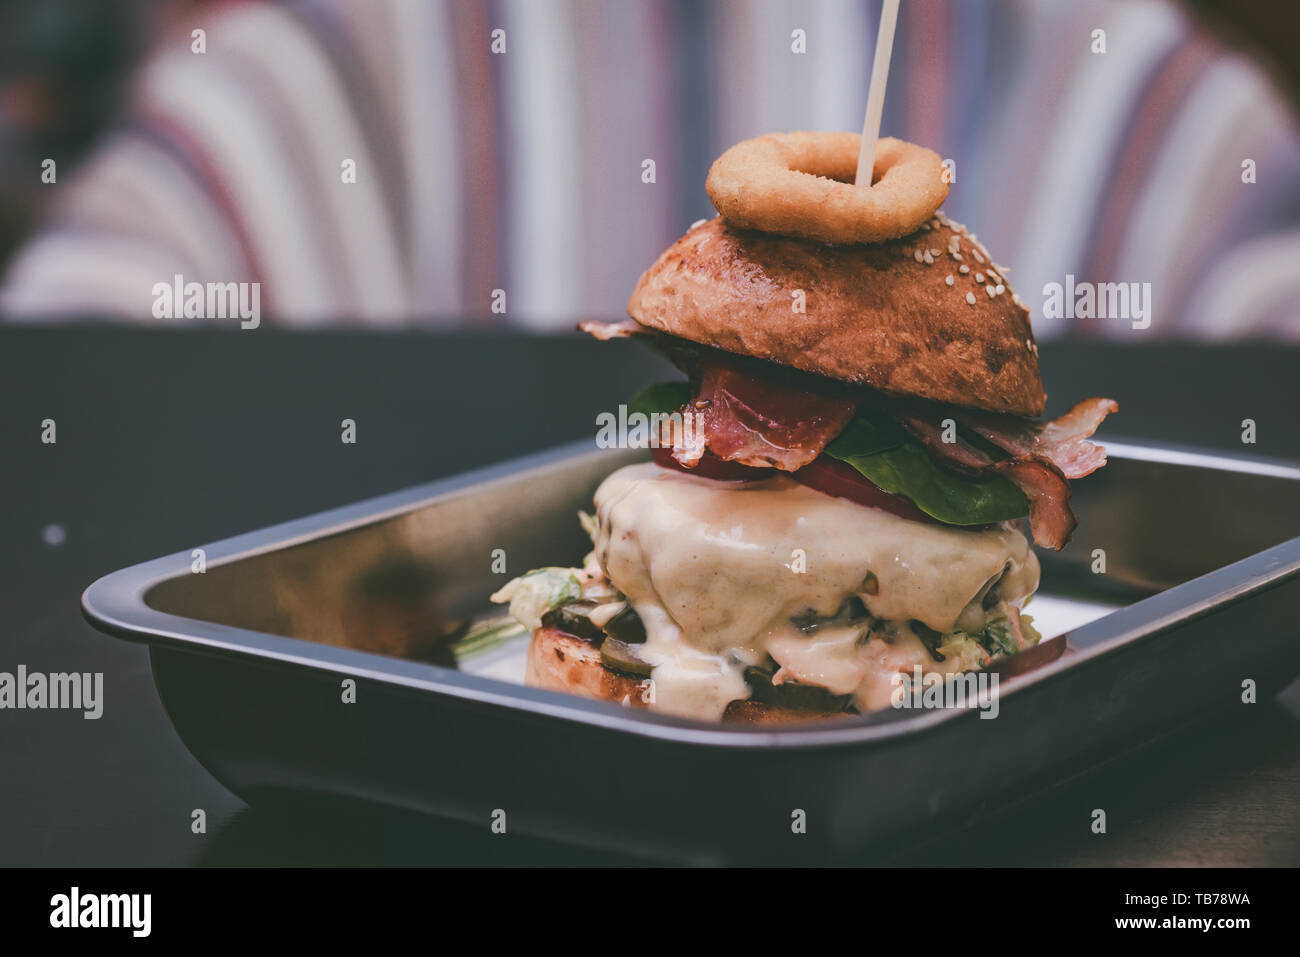 Close up tall tasty burger with cheese served on tray Stock Photo